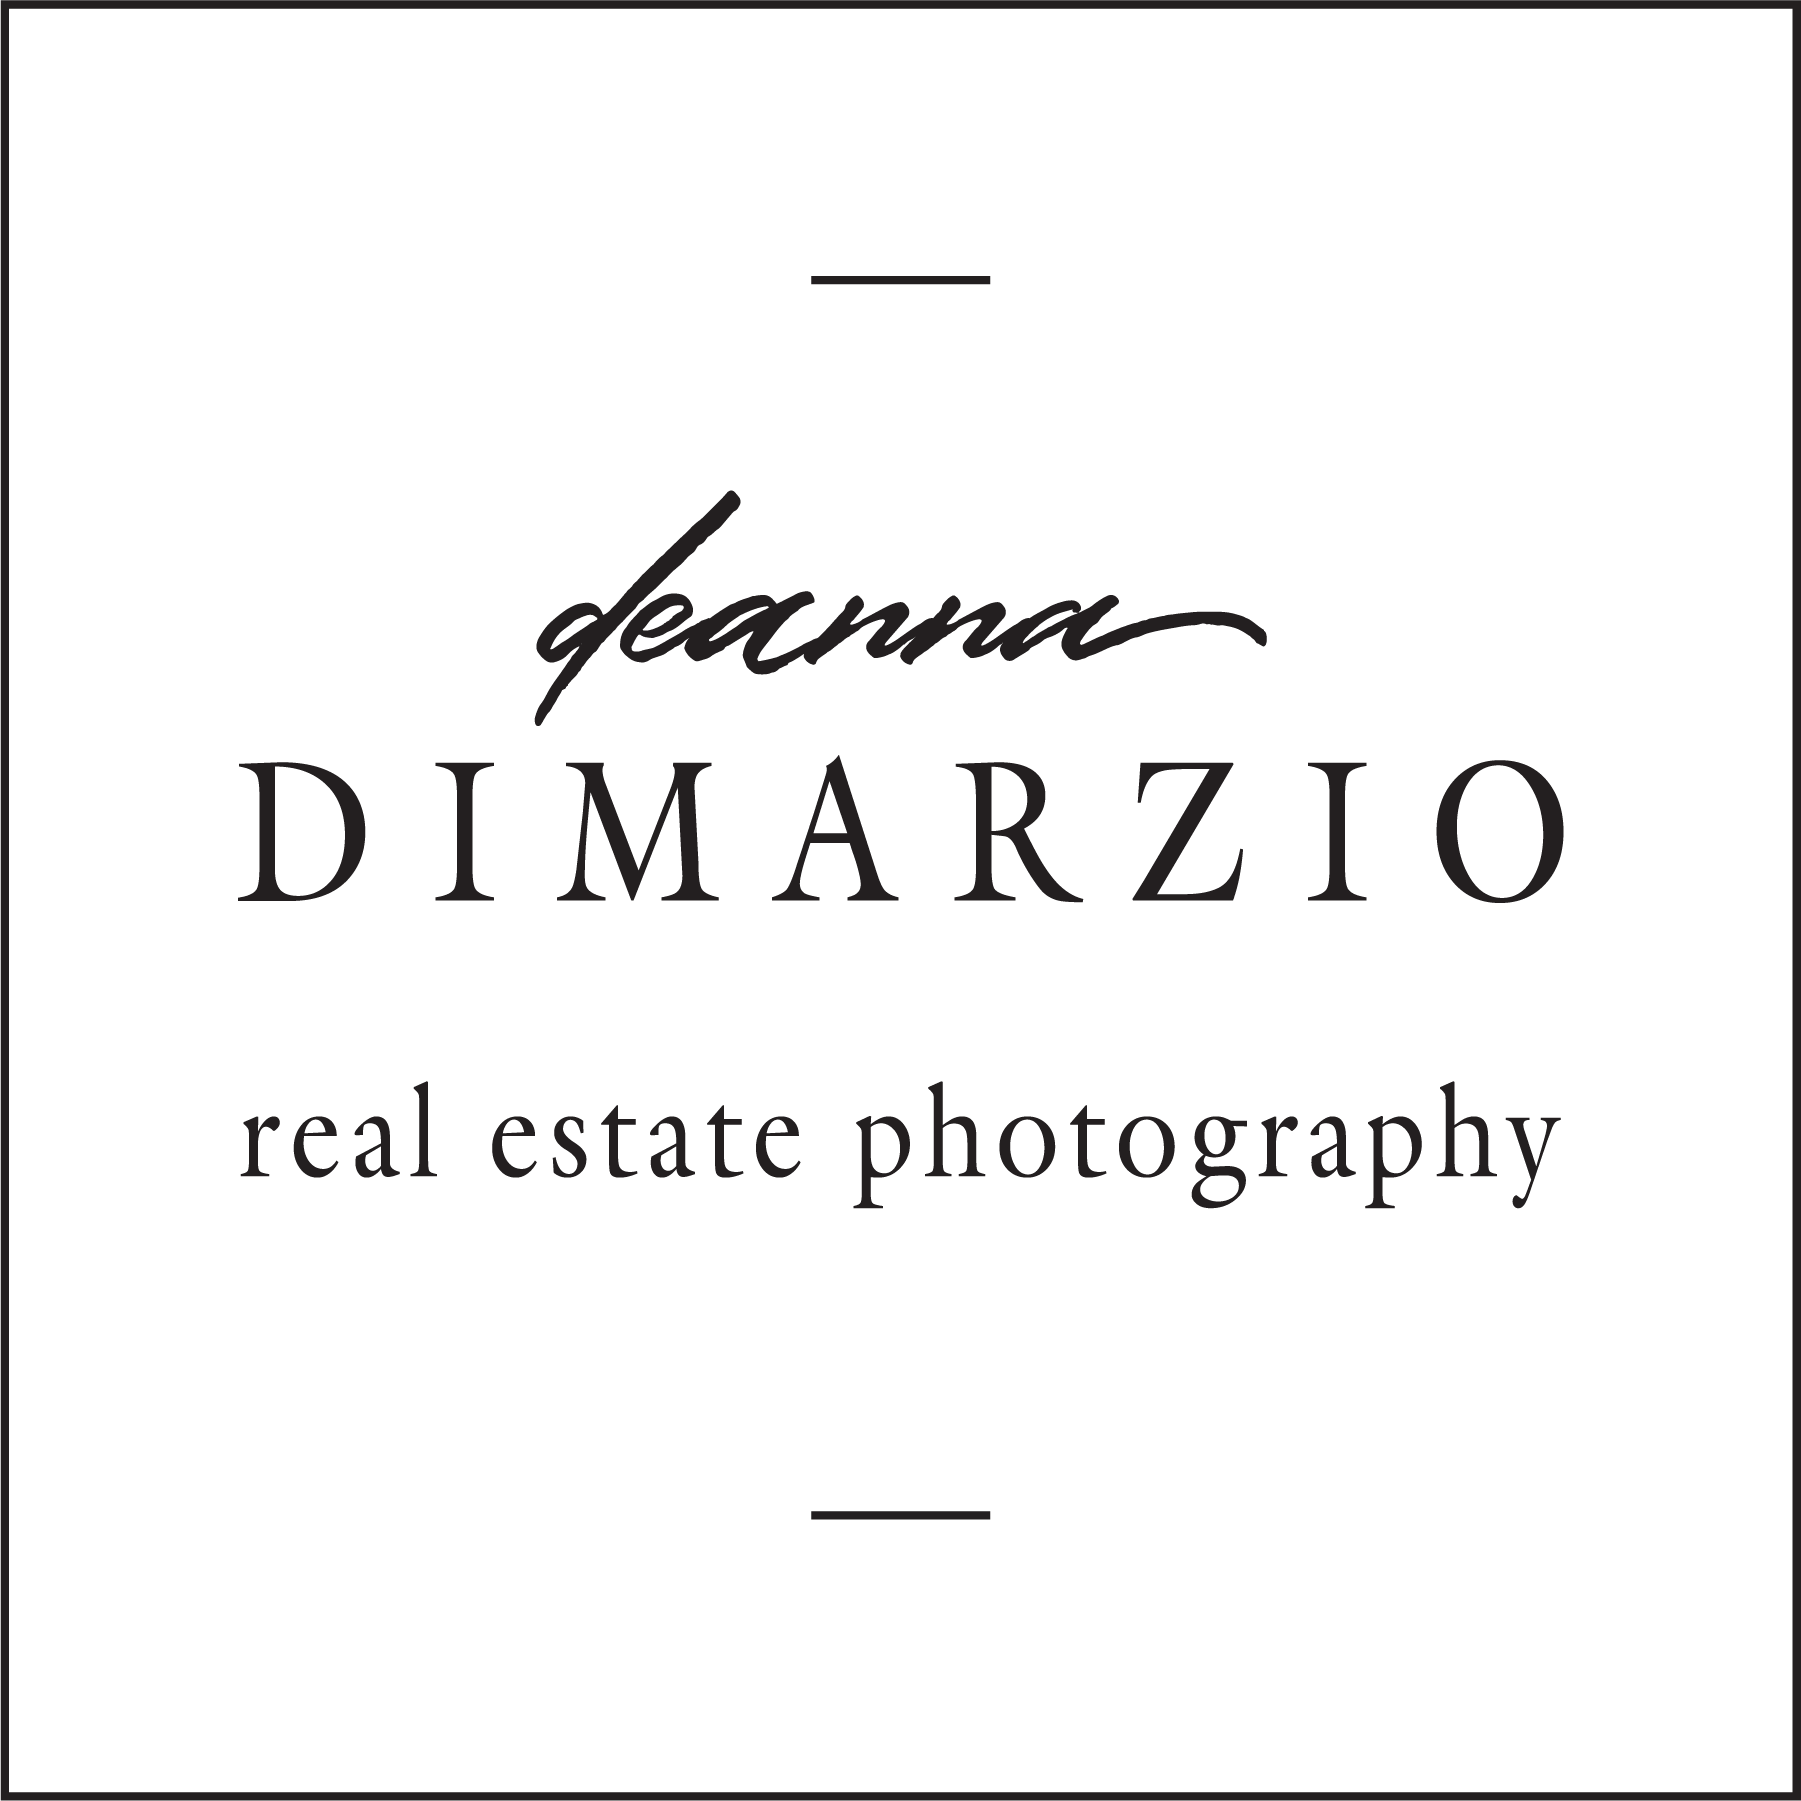 Deanna DiMarzio Real Estate Photography logo